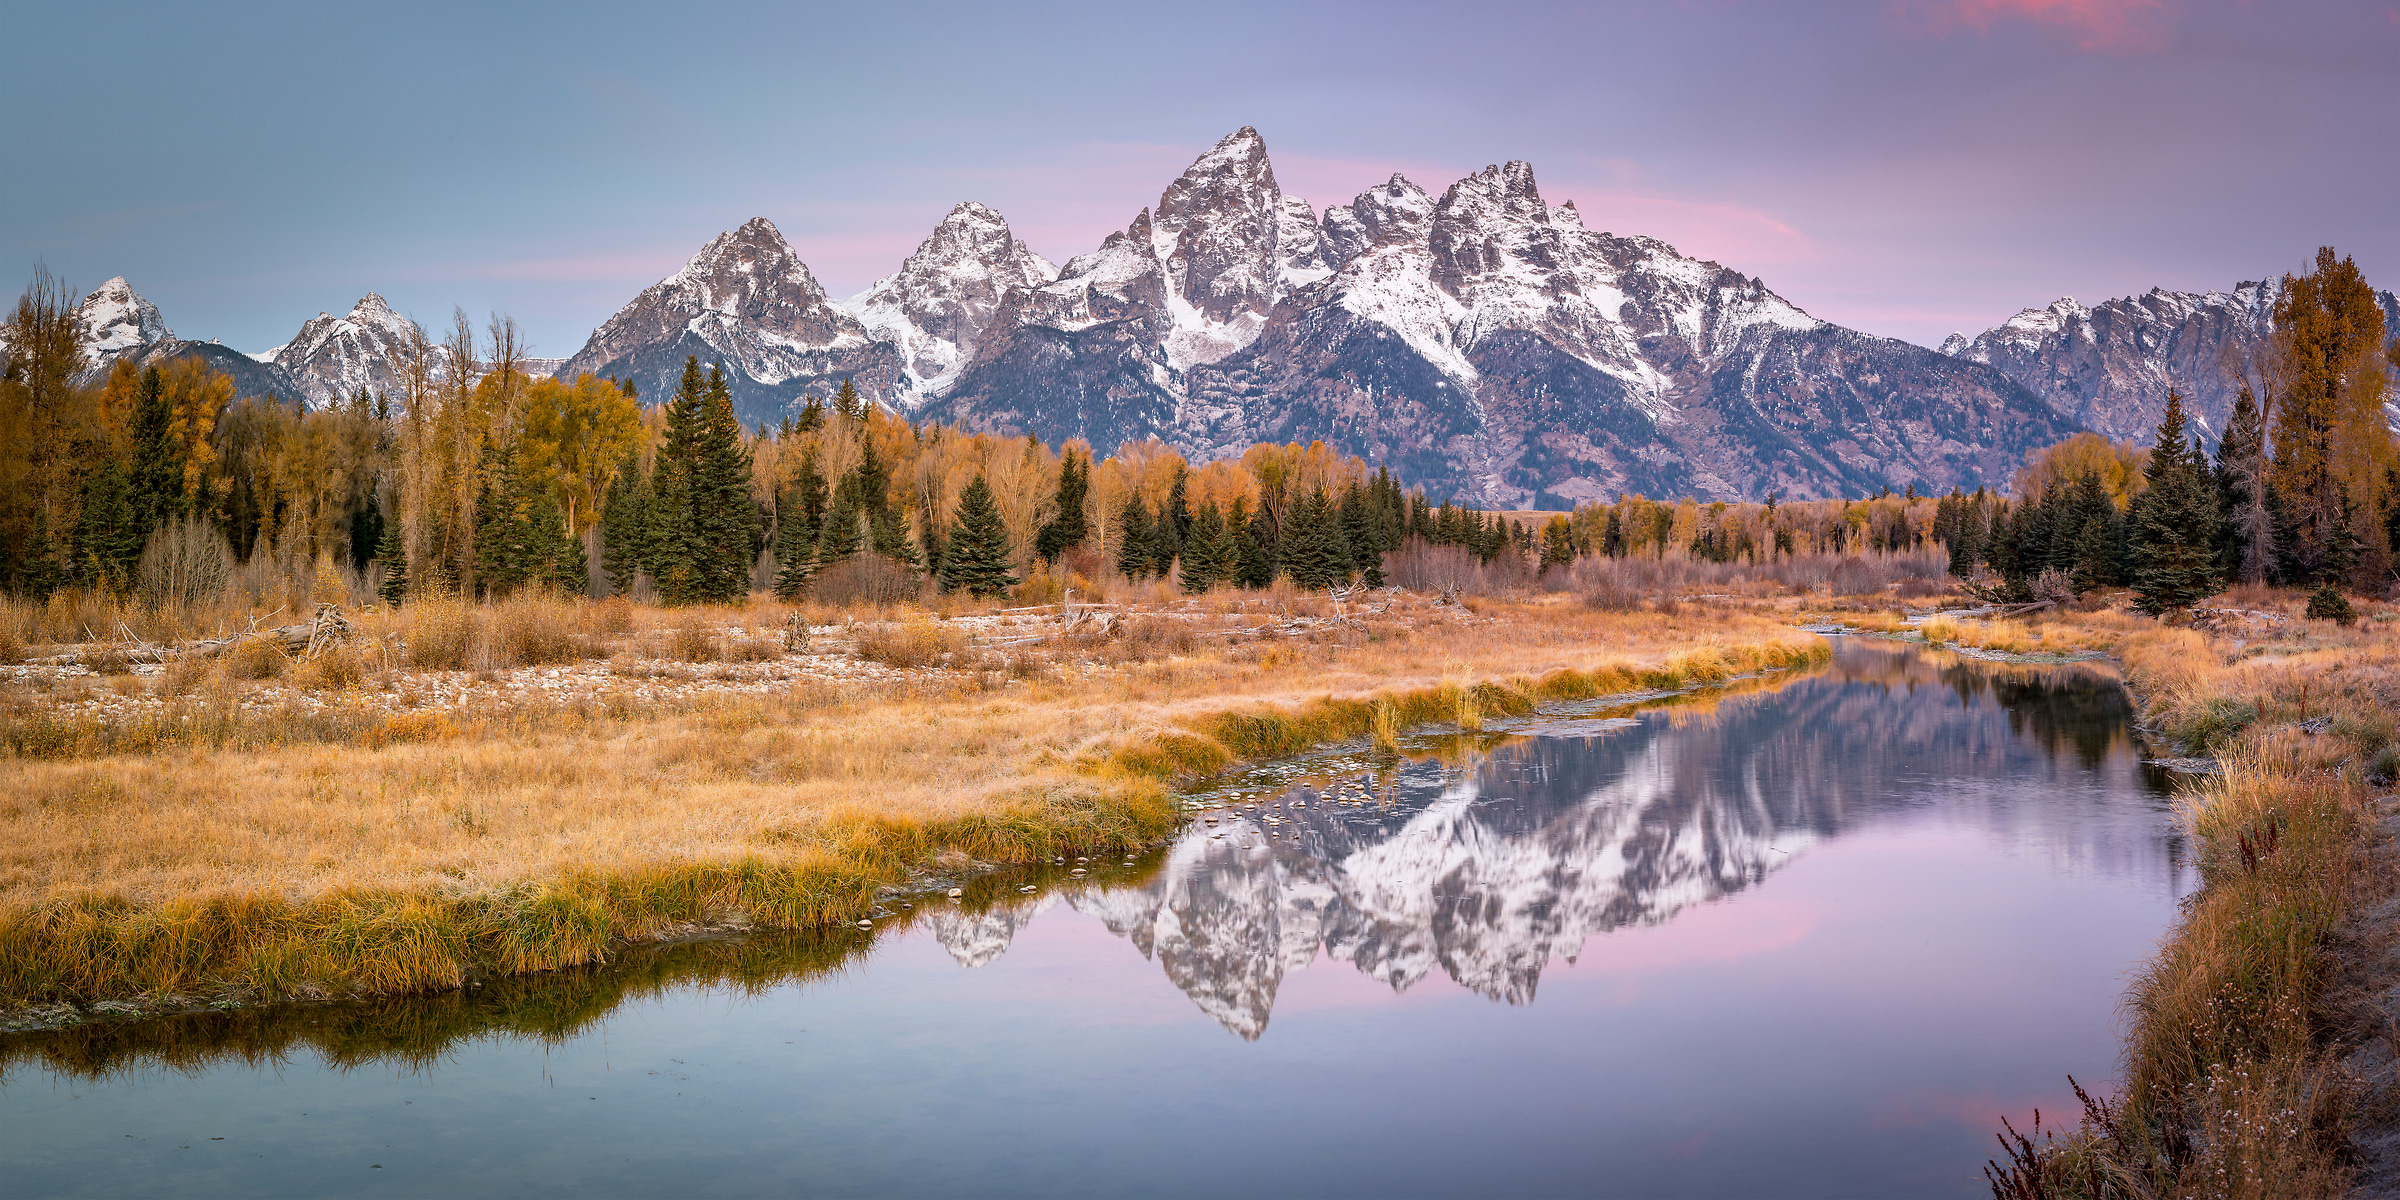 266 megapixels! A very high resolution, large-format VAST photo print of a mountain landscape scene at dawn with the Grand Tetons, a river, and a forest with autumn foliage; landscape photo created by Justin Katz in Grand Teton National Park, Wyoming